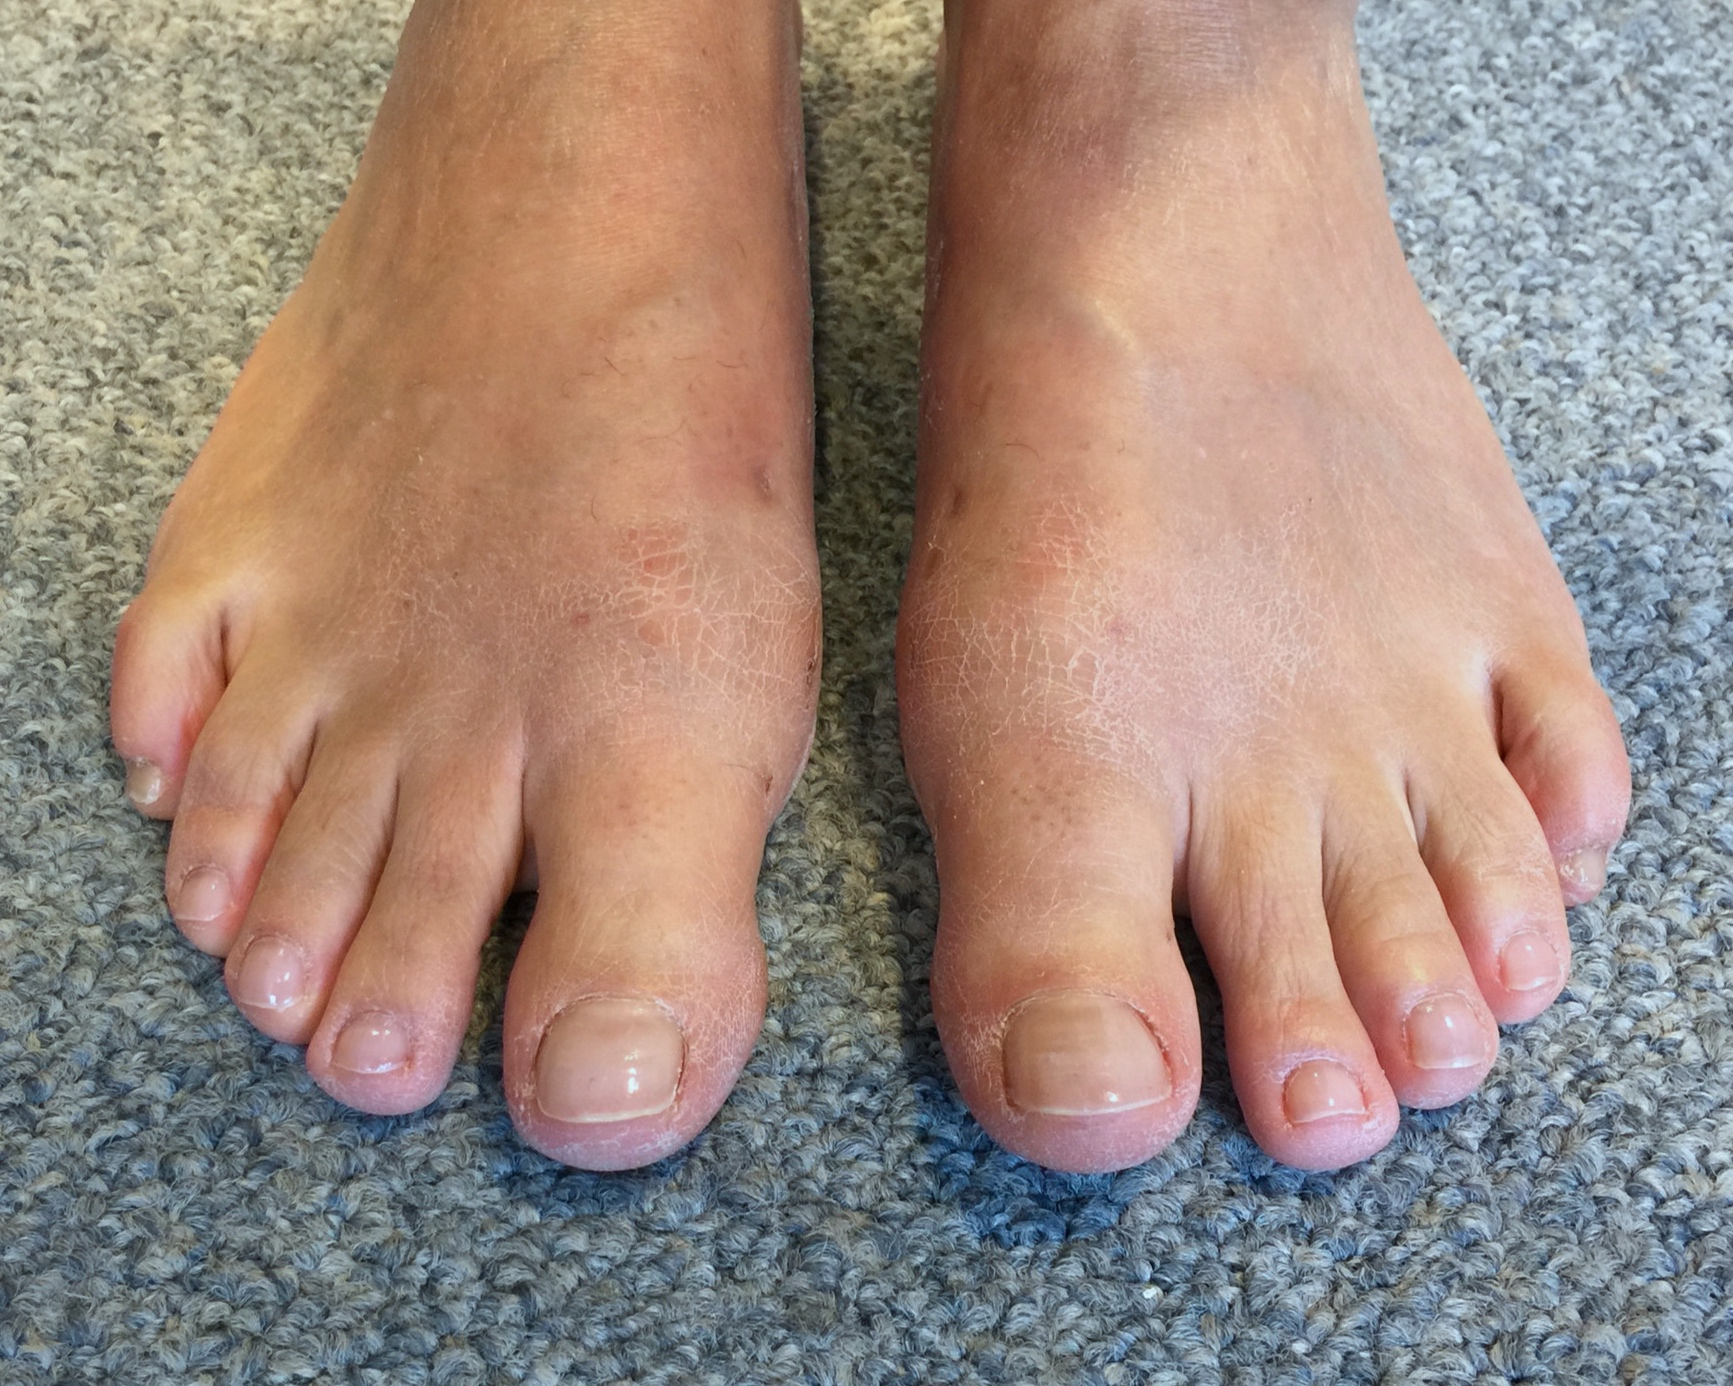 Case 4: Six weeks after MICA (ProStep)